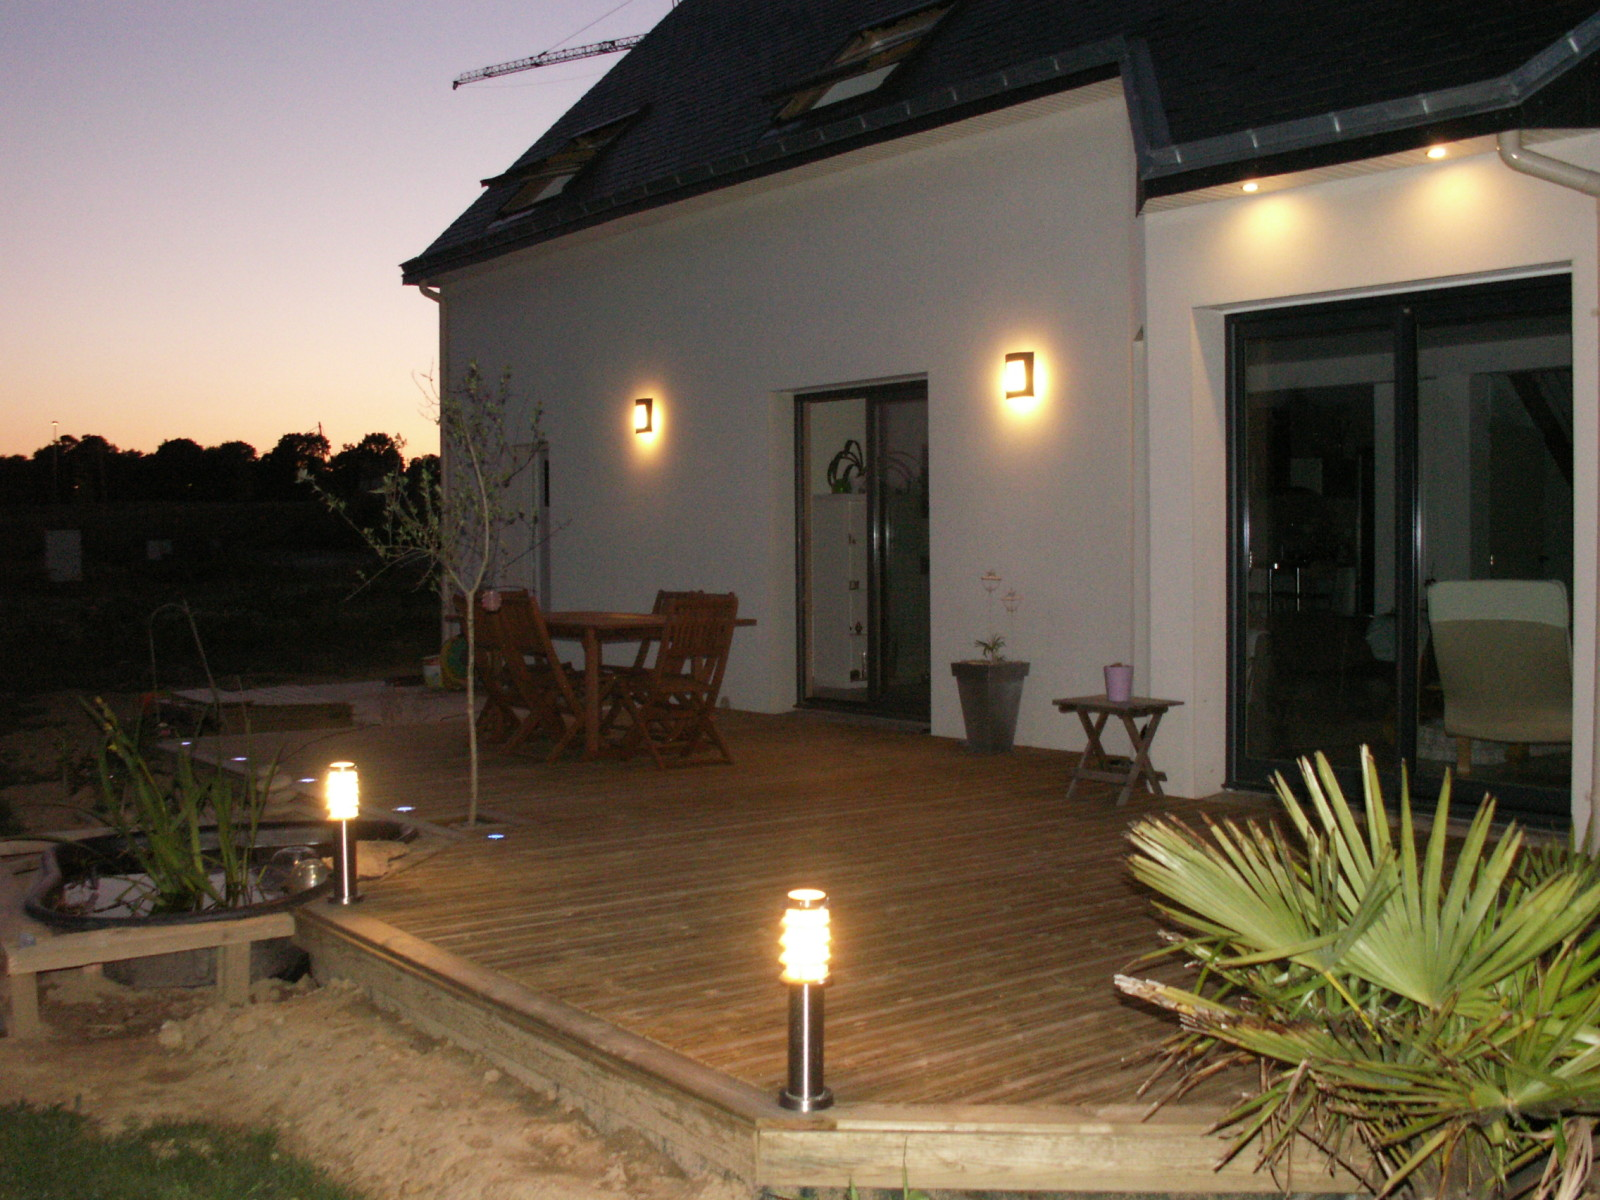 Clairage terrasse eclairage ext rieur for Eclairage terrasse led exterieur